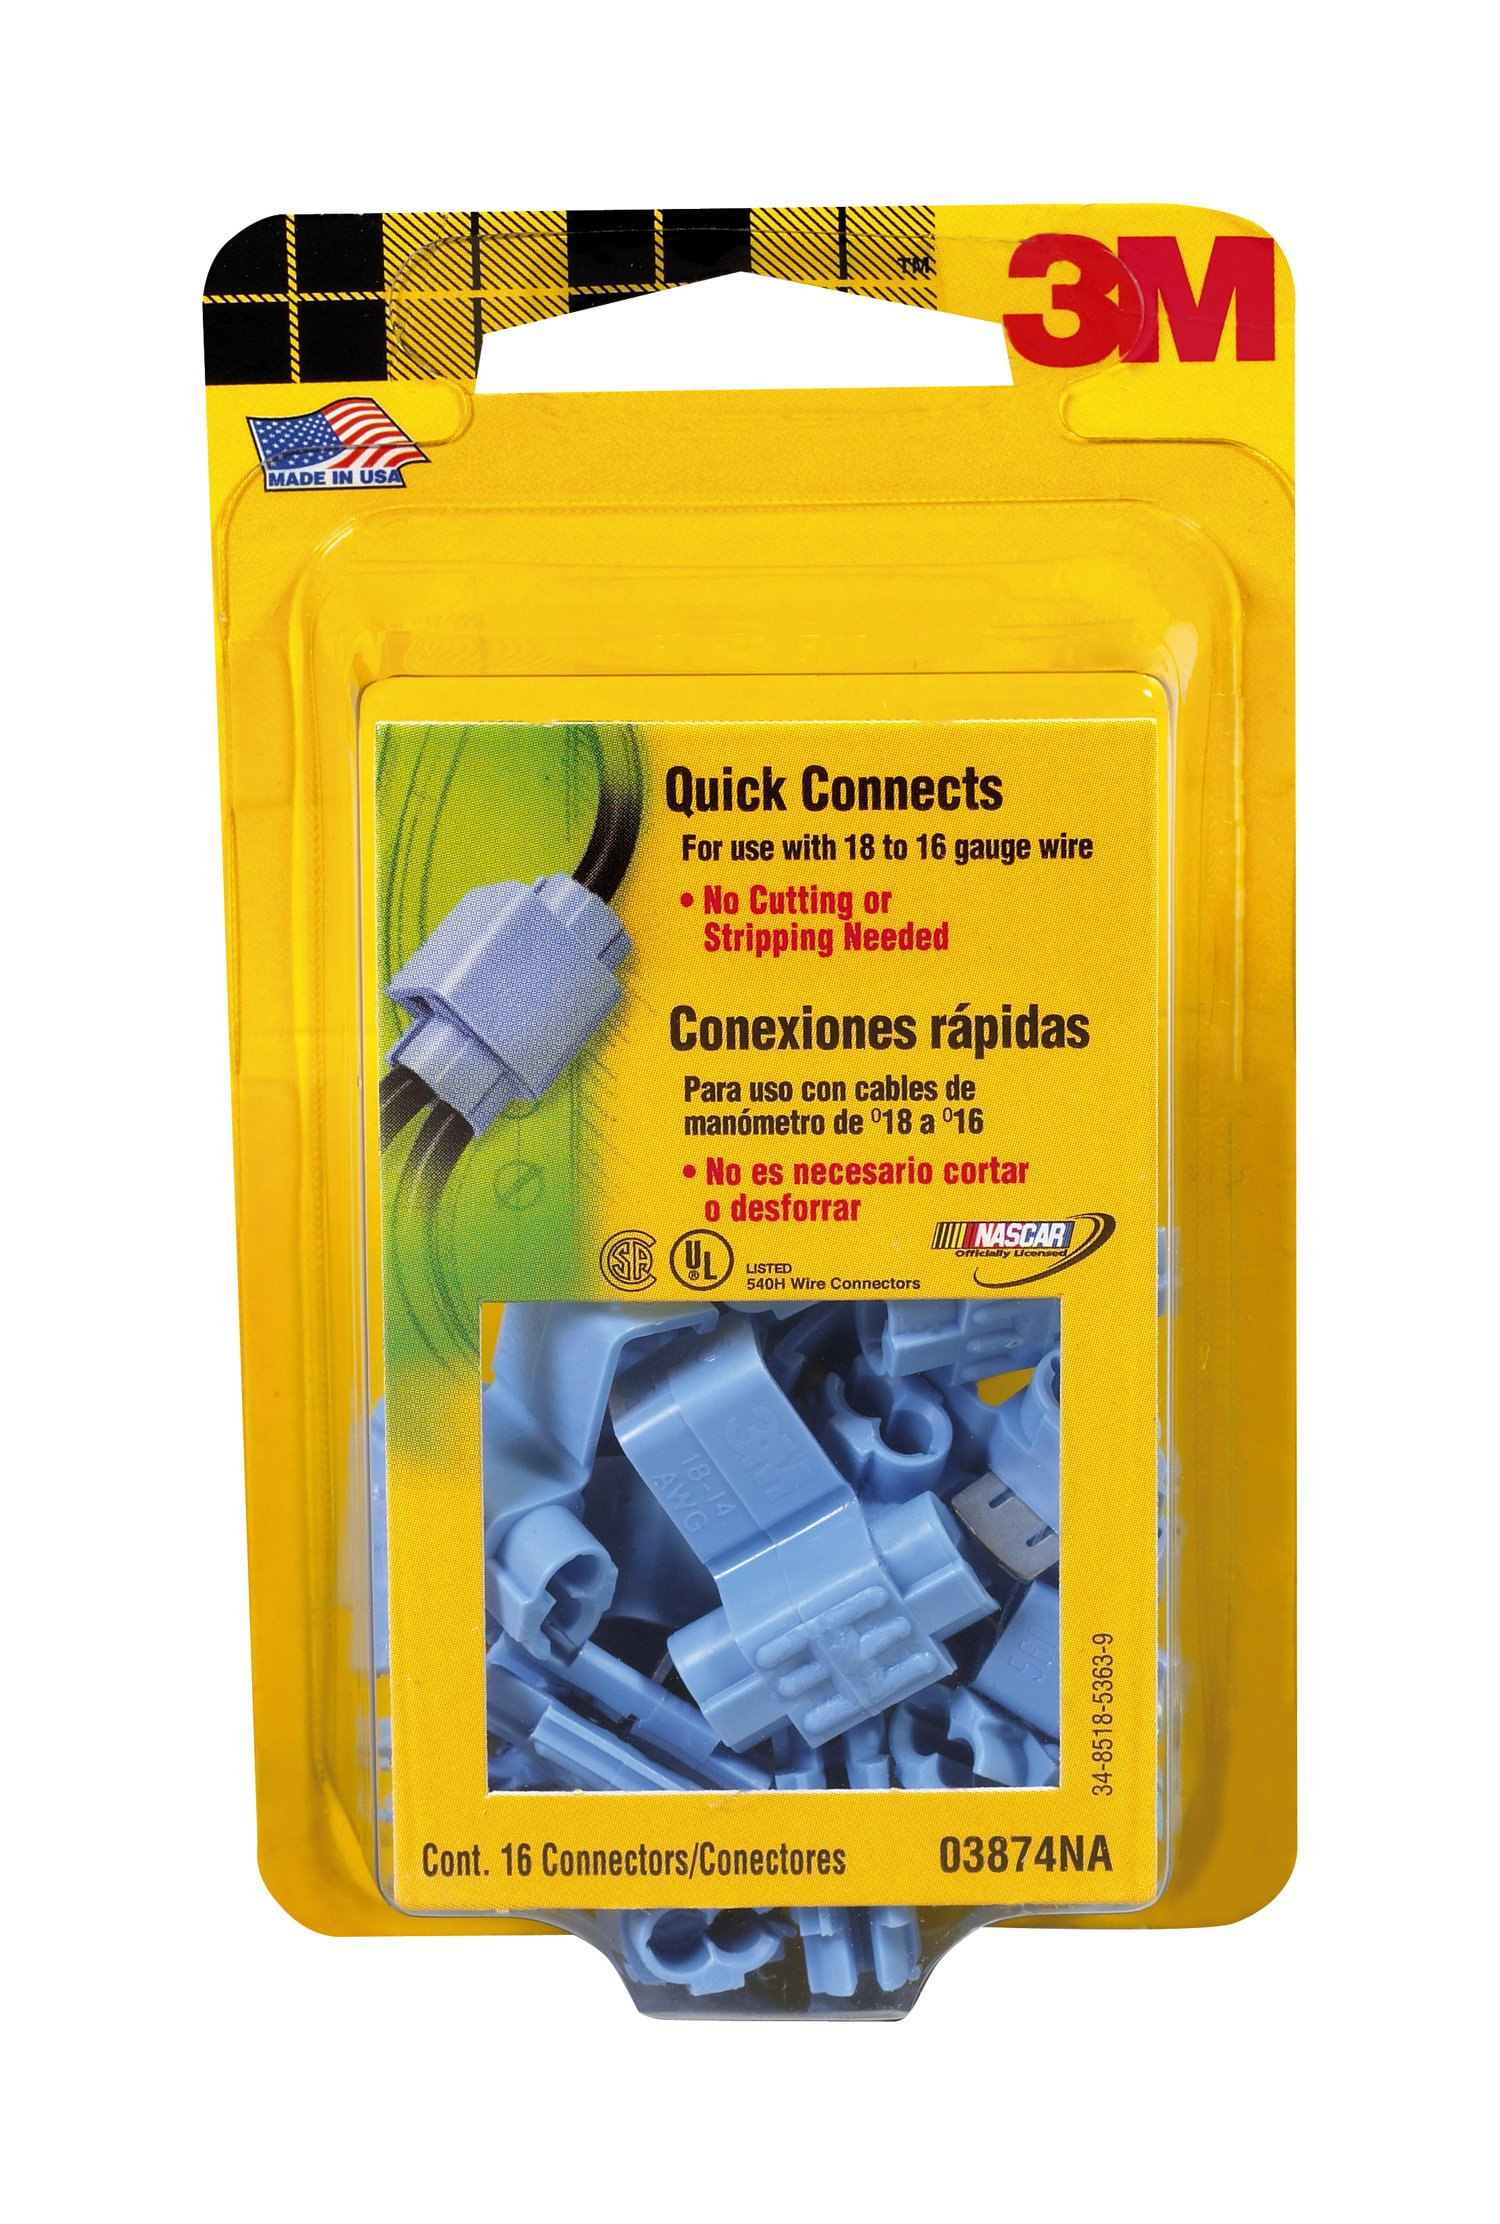 3M 03874NA 18-14 Gauge Electrical Connectors 16 Quick Connects, Blue, 16-Pack